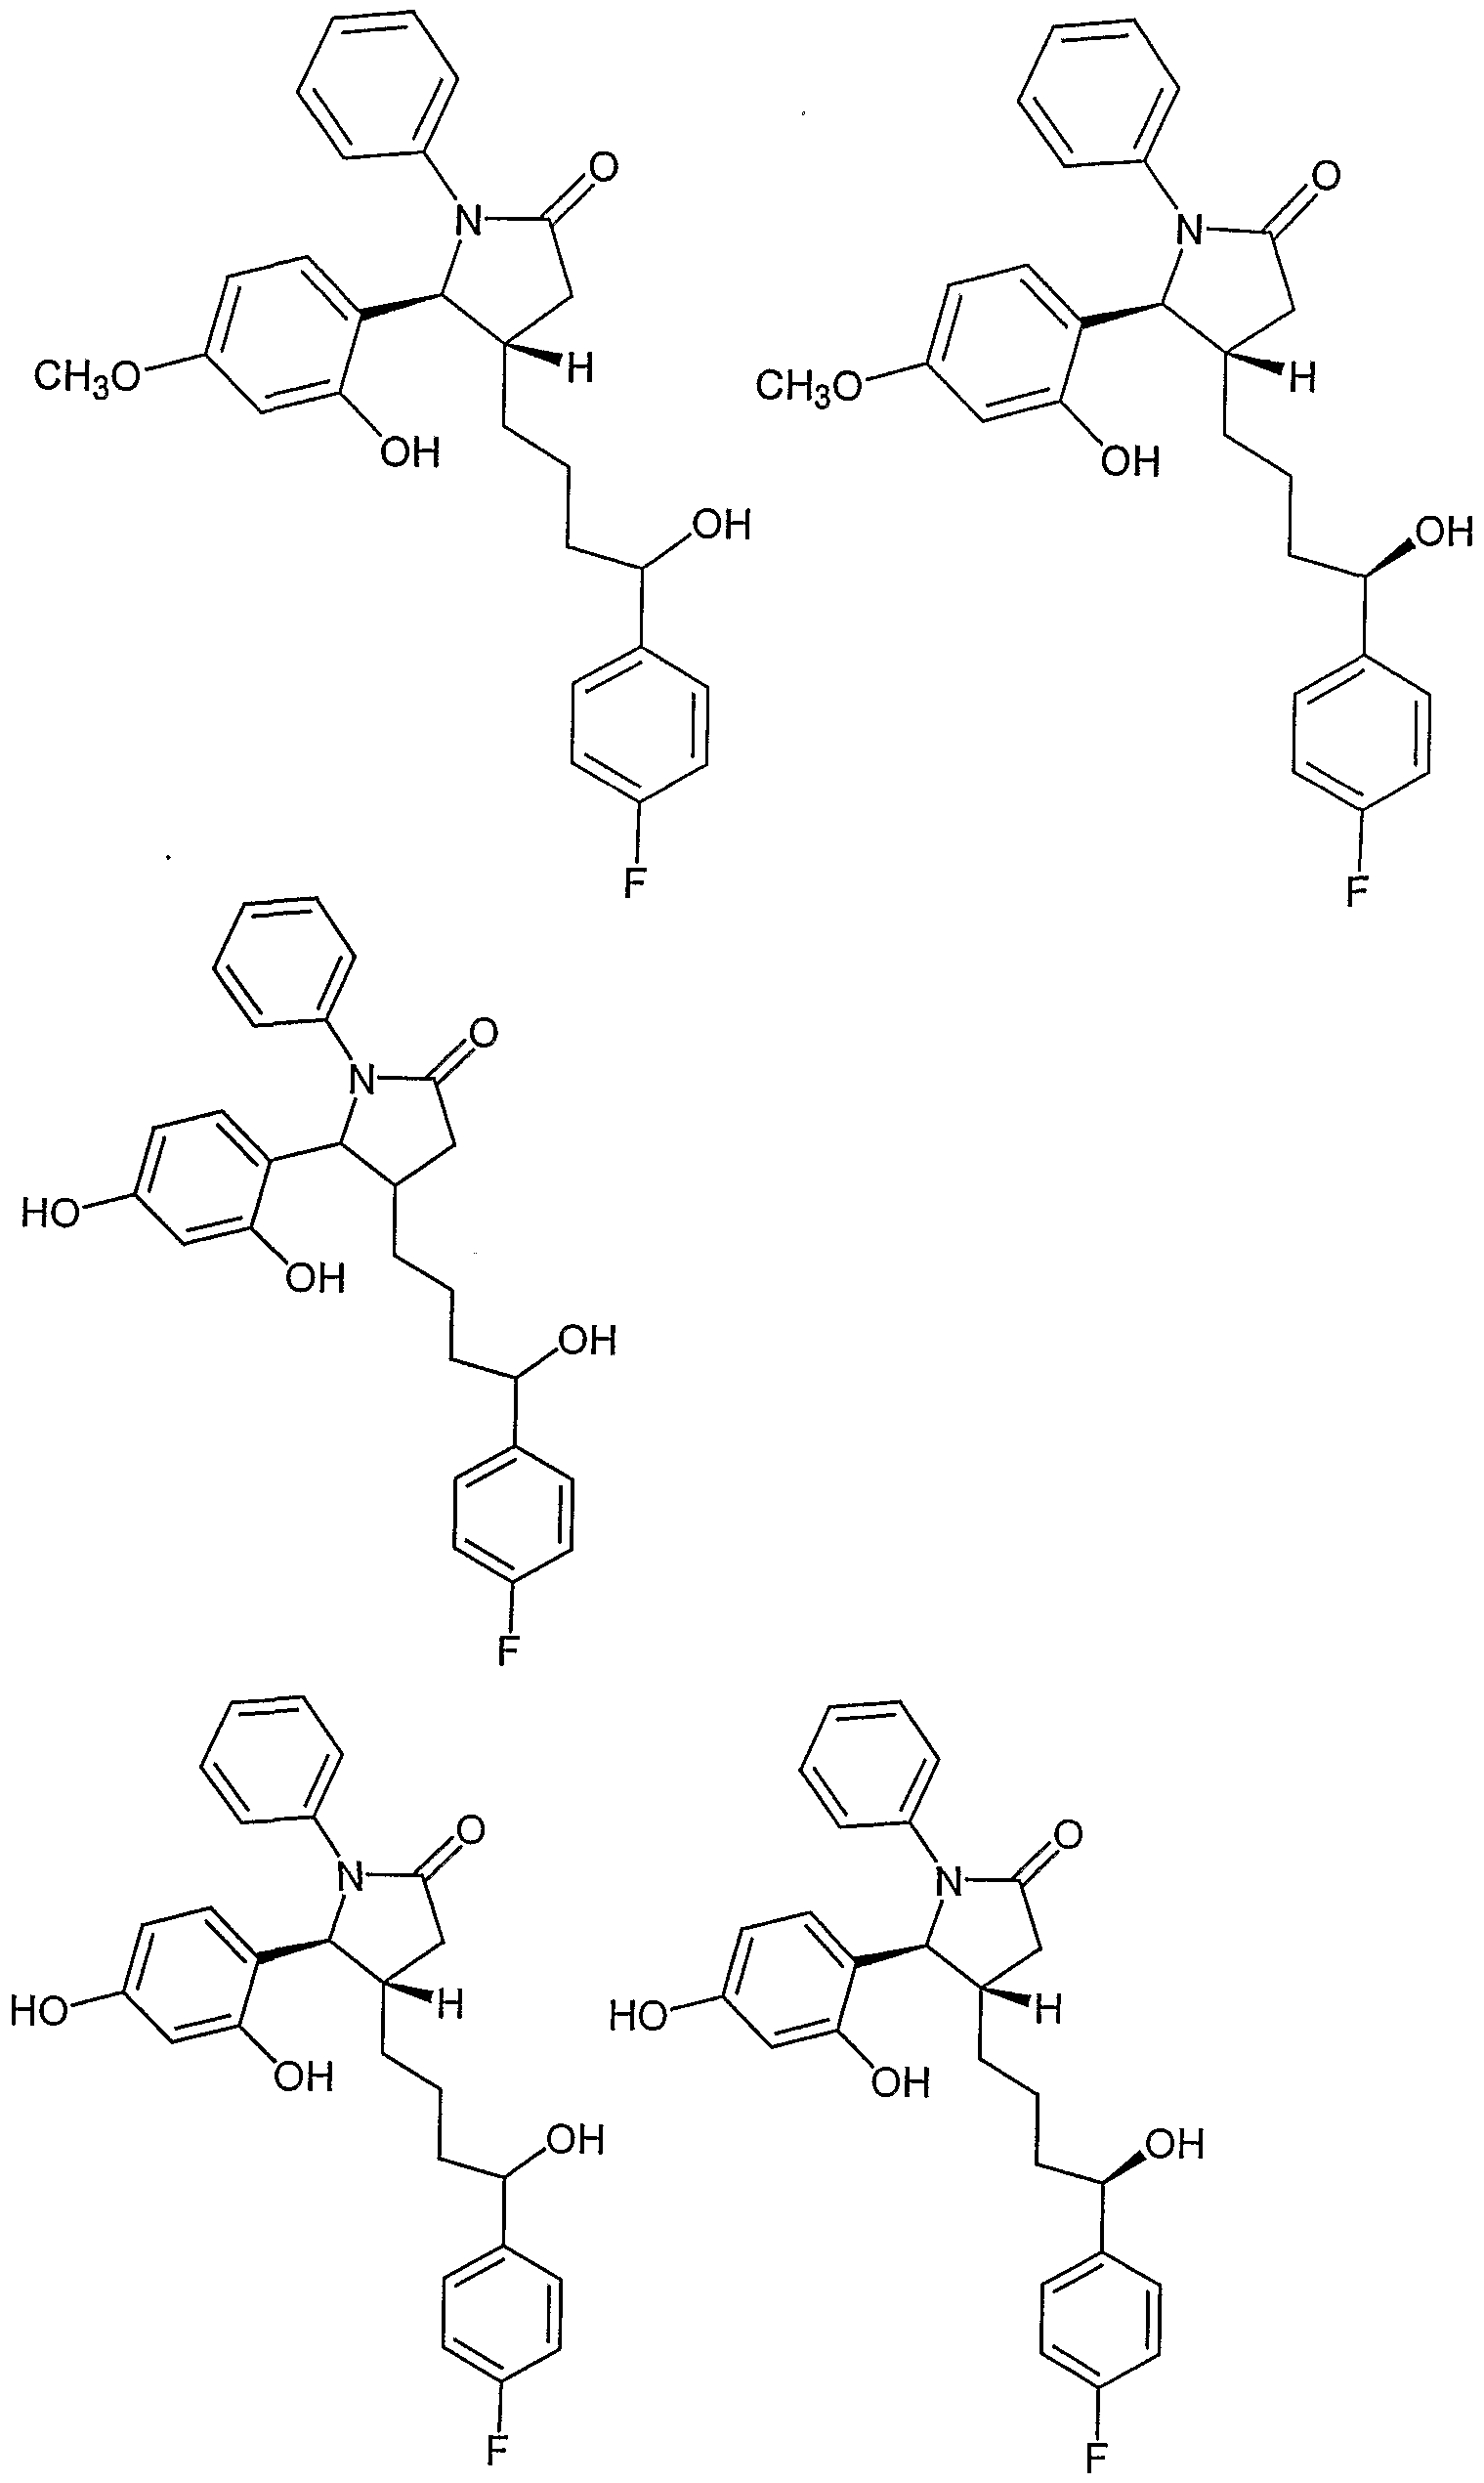 Simple Brain Diagram Labeled Images Frompo Wo2006102674a2 Diphenylheterocycle Cholesterol Absorption Figure Imgf000030 0001